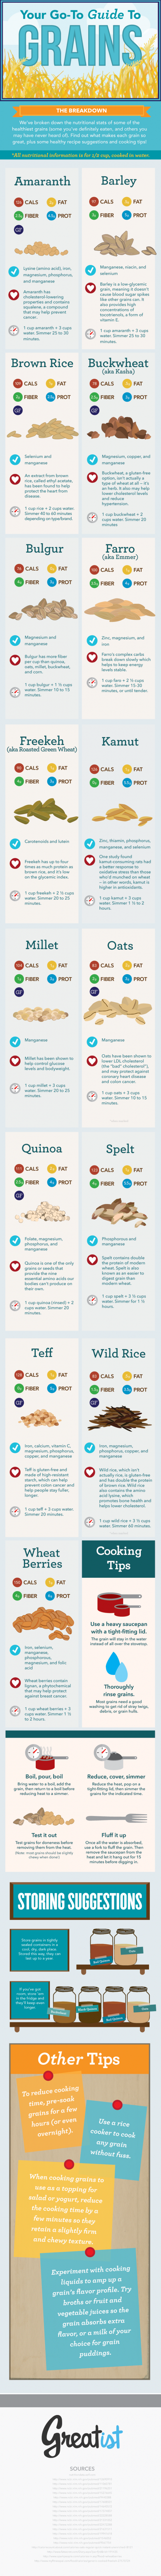 Your Go-To Gide for Choosing Healthier Grains